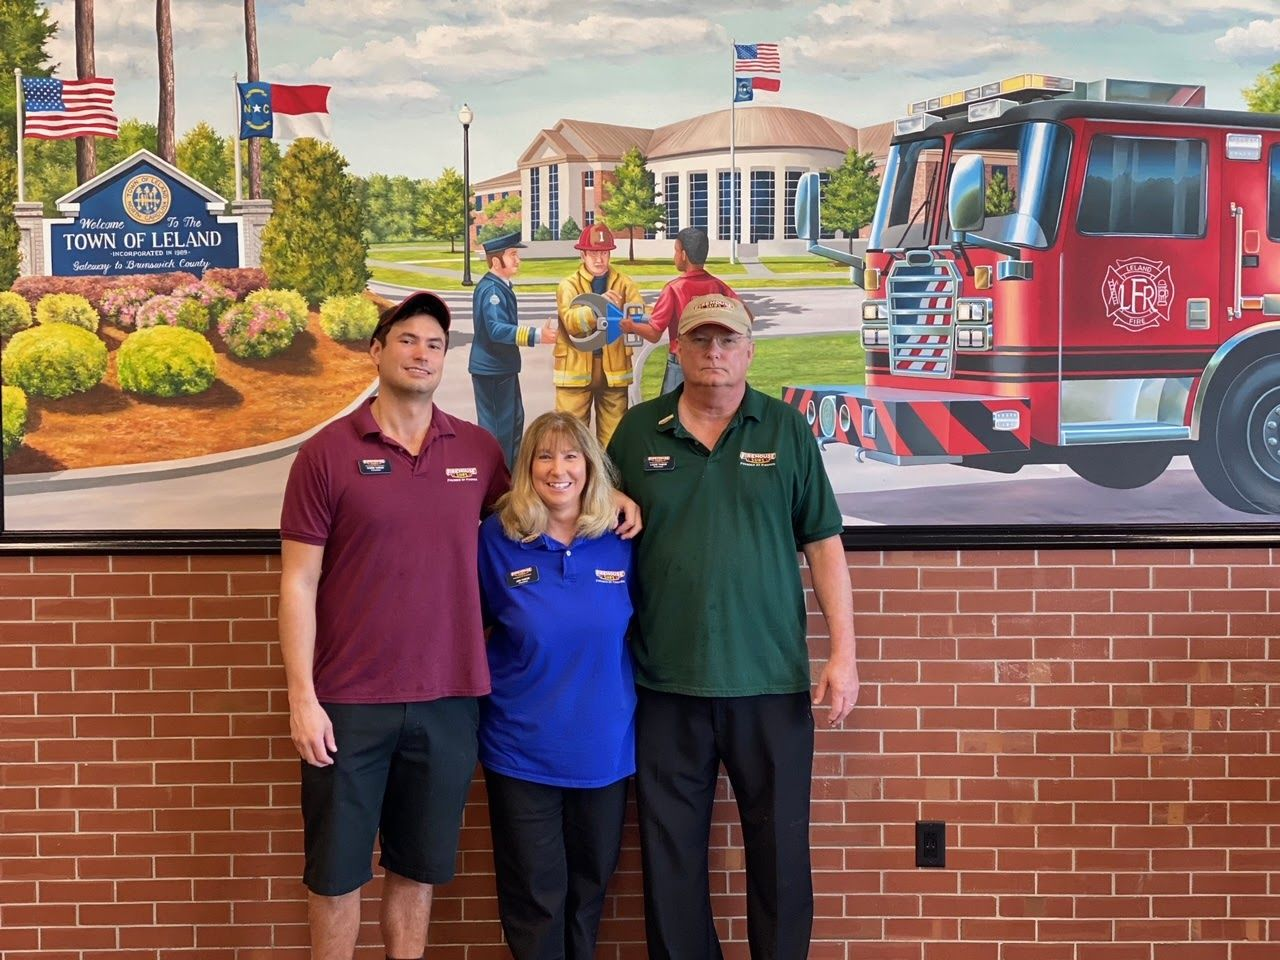 Local Restaurateur Family Opens First Firehouse Subs in Leland